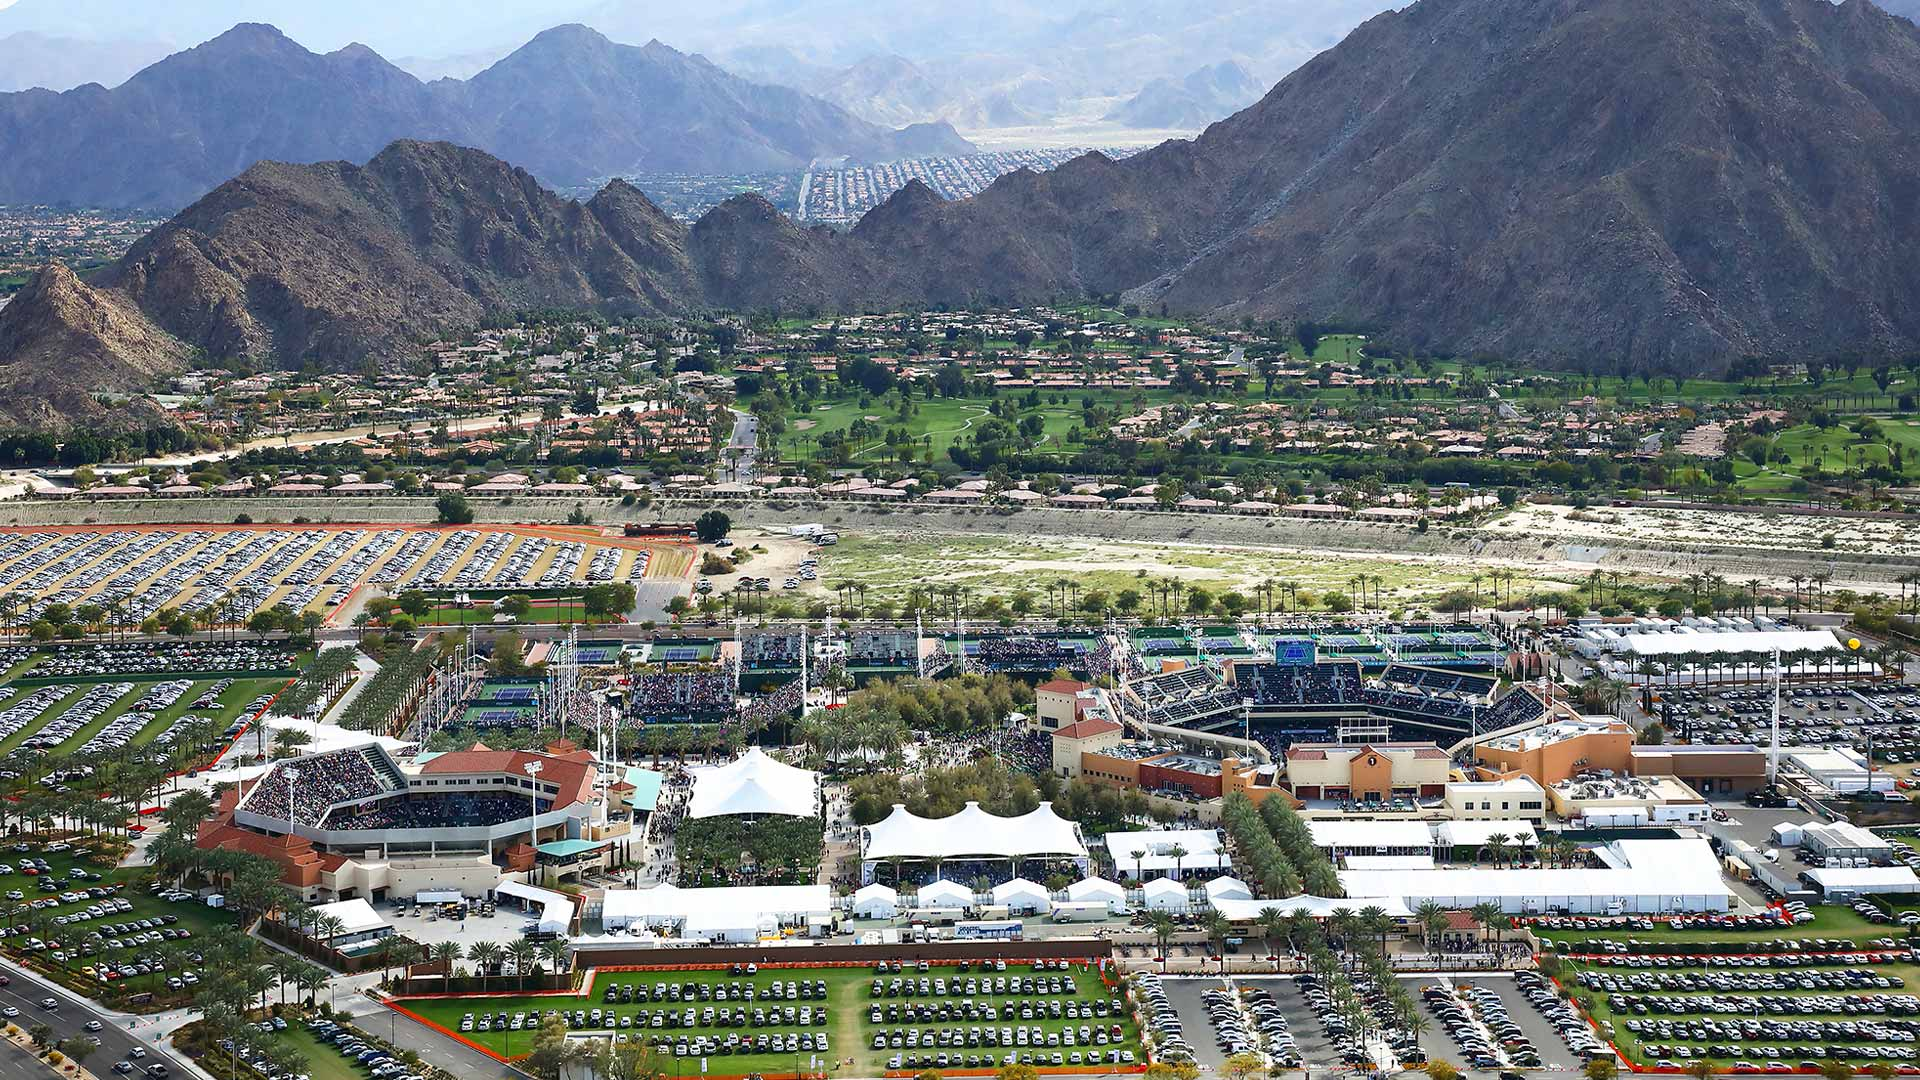 2019 ATP Awards: The BNP Paribas Open in Indian Wells wins in the ATP Masters 1000 category for a record-breaking sixth time.